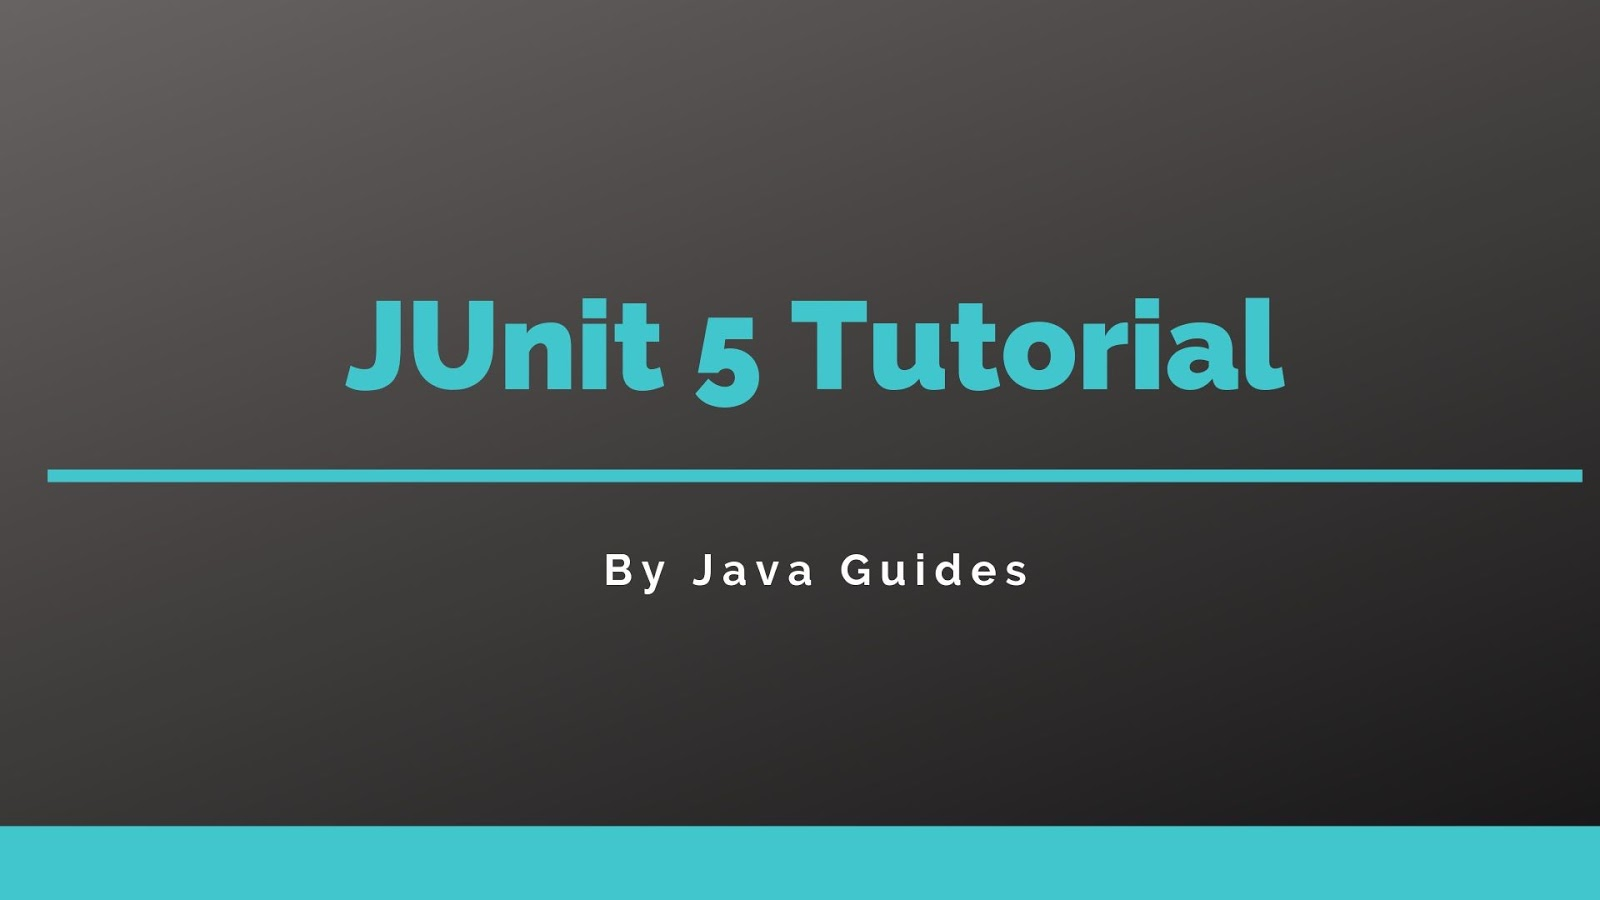 JUnit 5 Tutorial